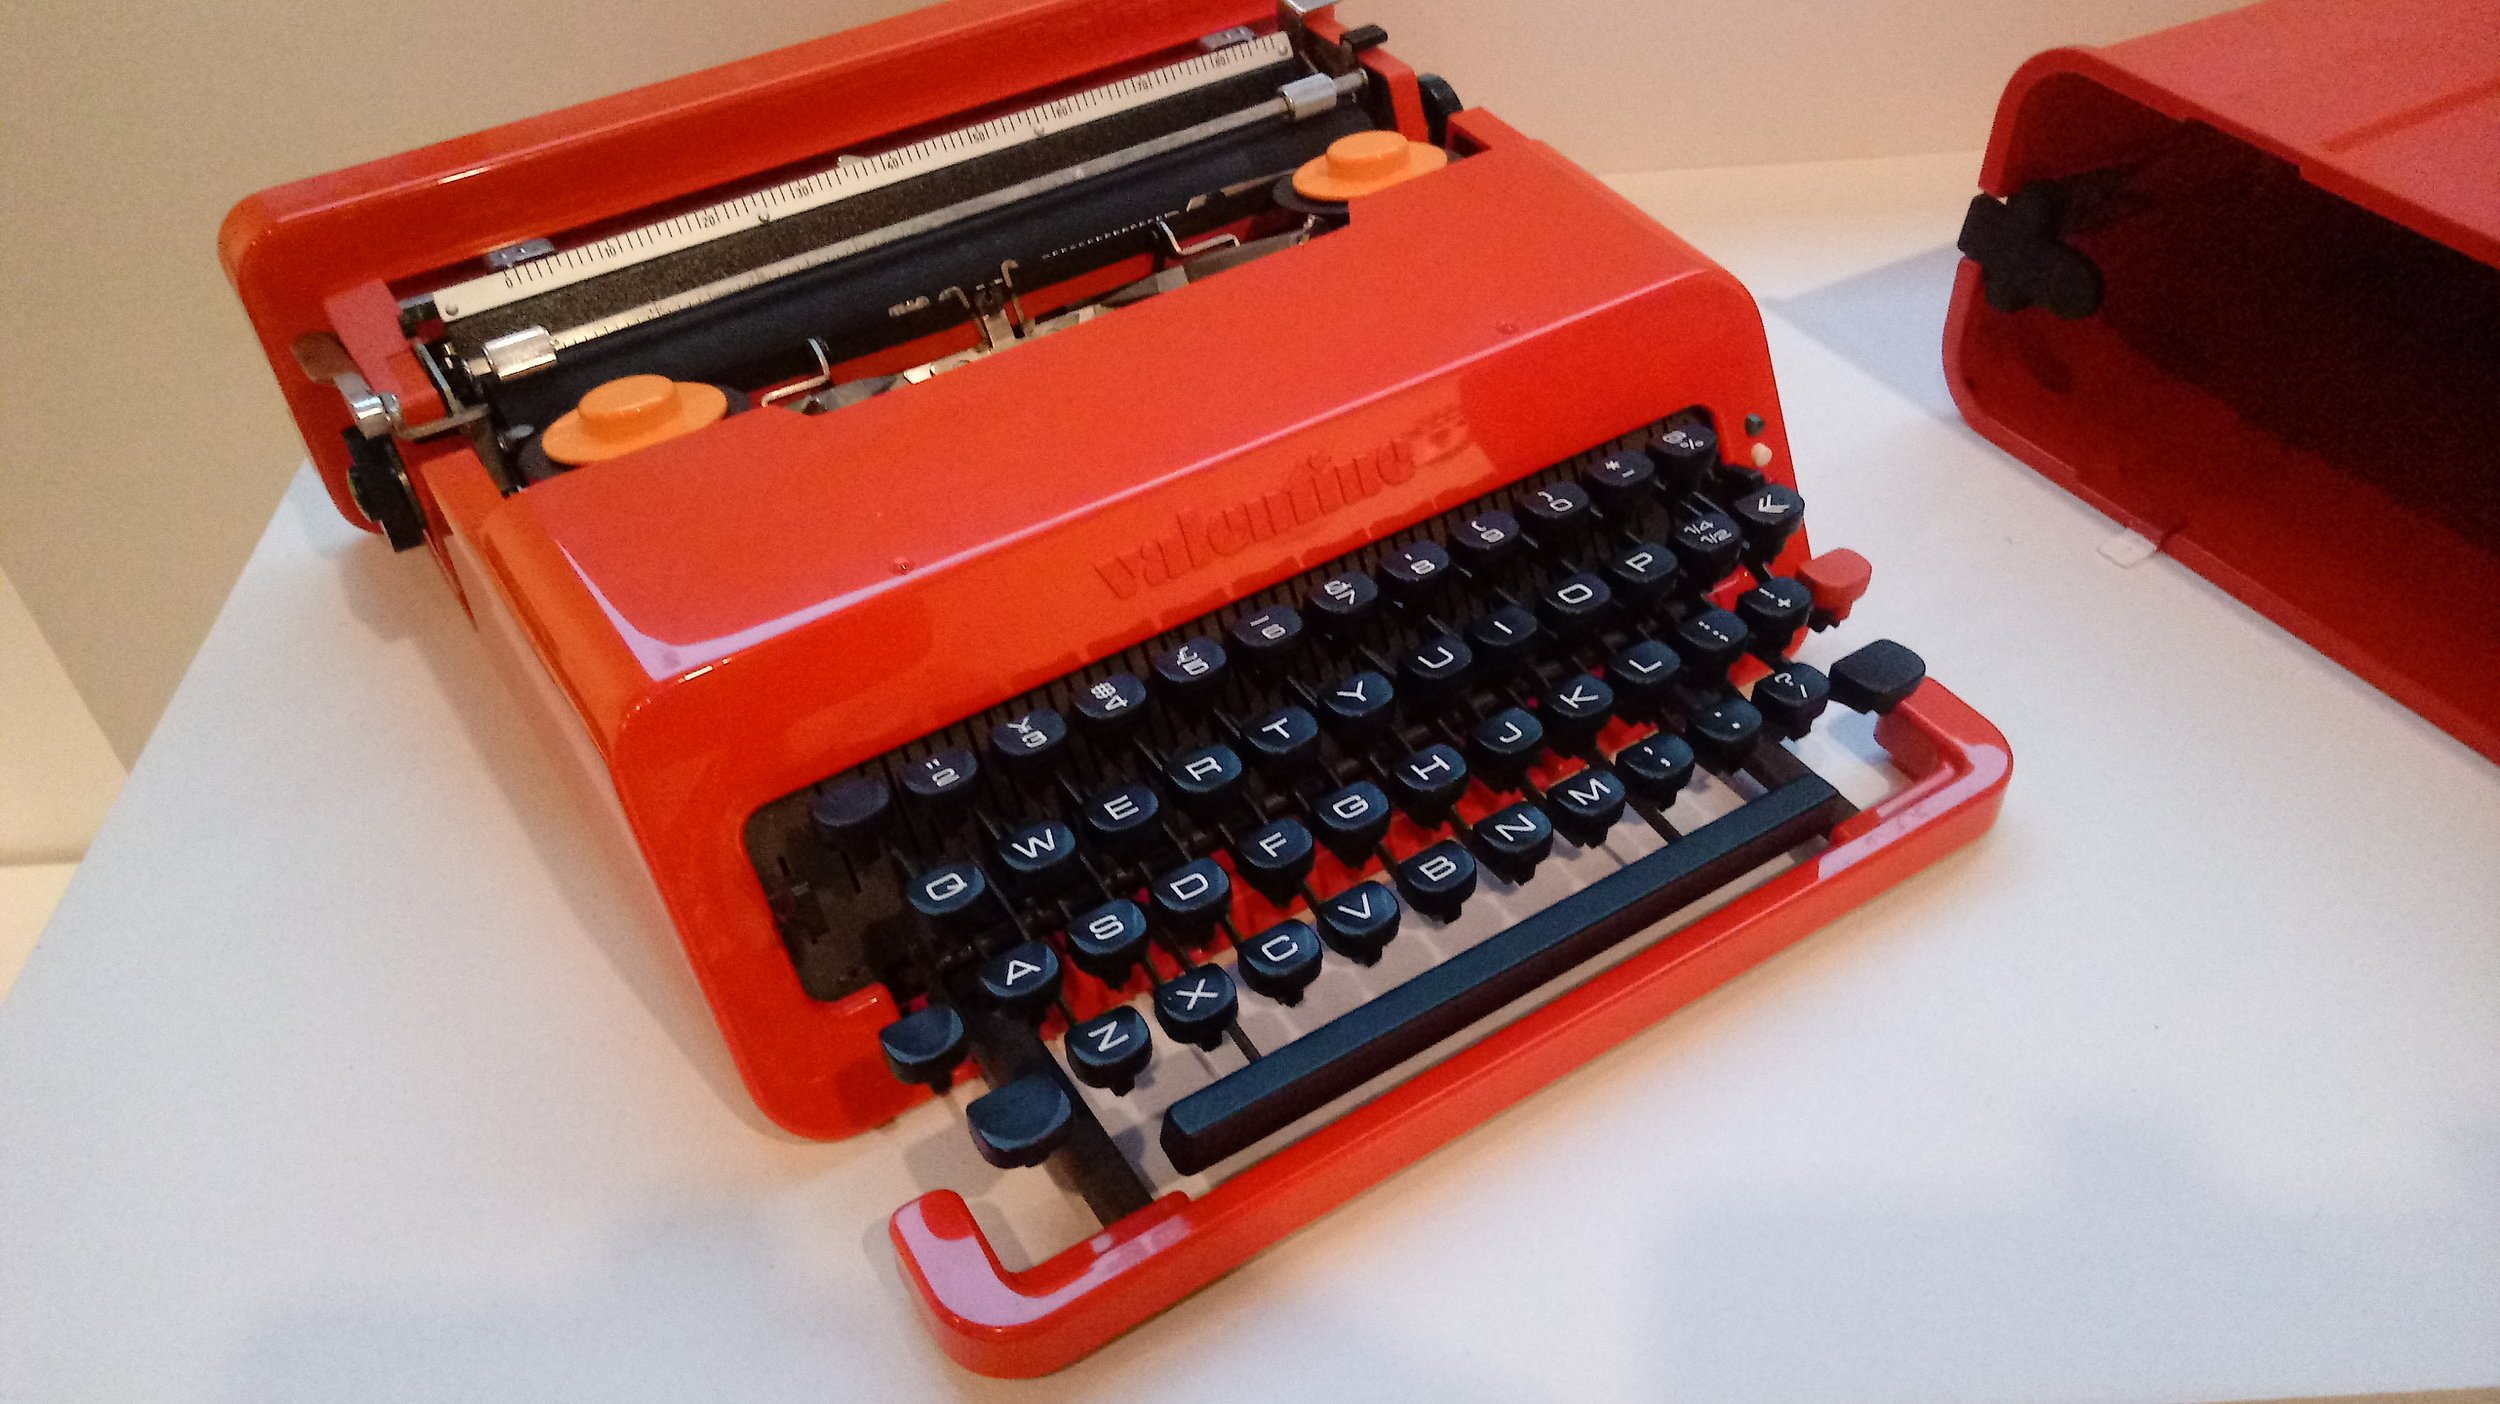 Lightweight and vibrant, the  Valentine  typewriter by Ettore Sottsass for Olivetti was a departure from the bulky and drab machines of the day and a forerunner to the colorful and playful iMac.